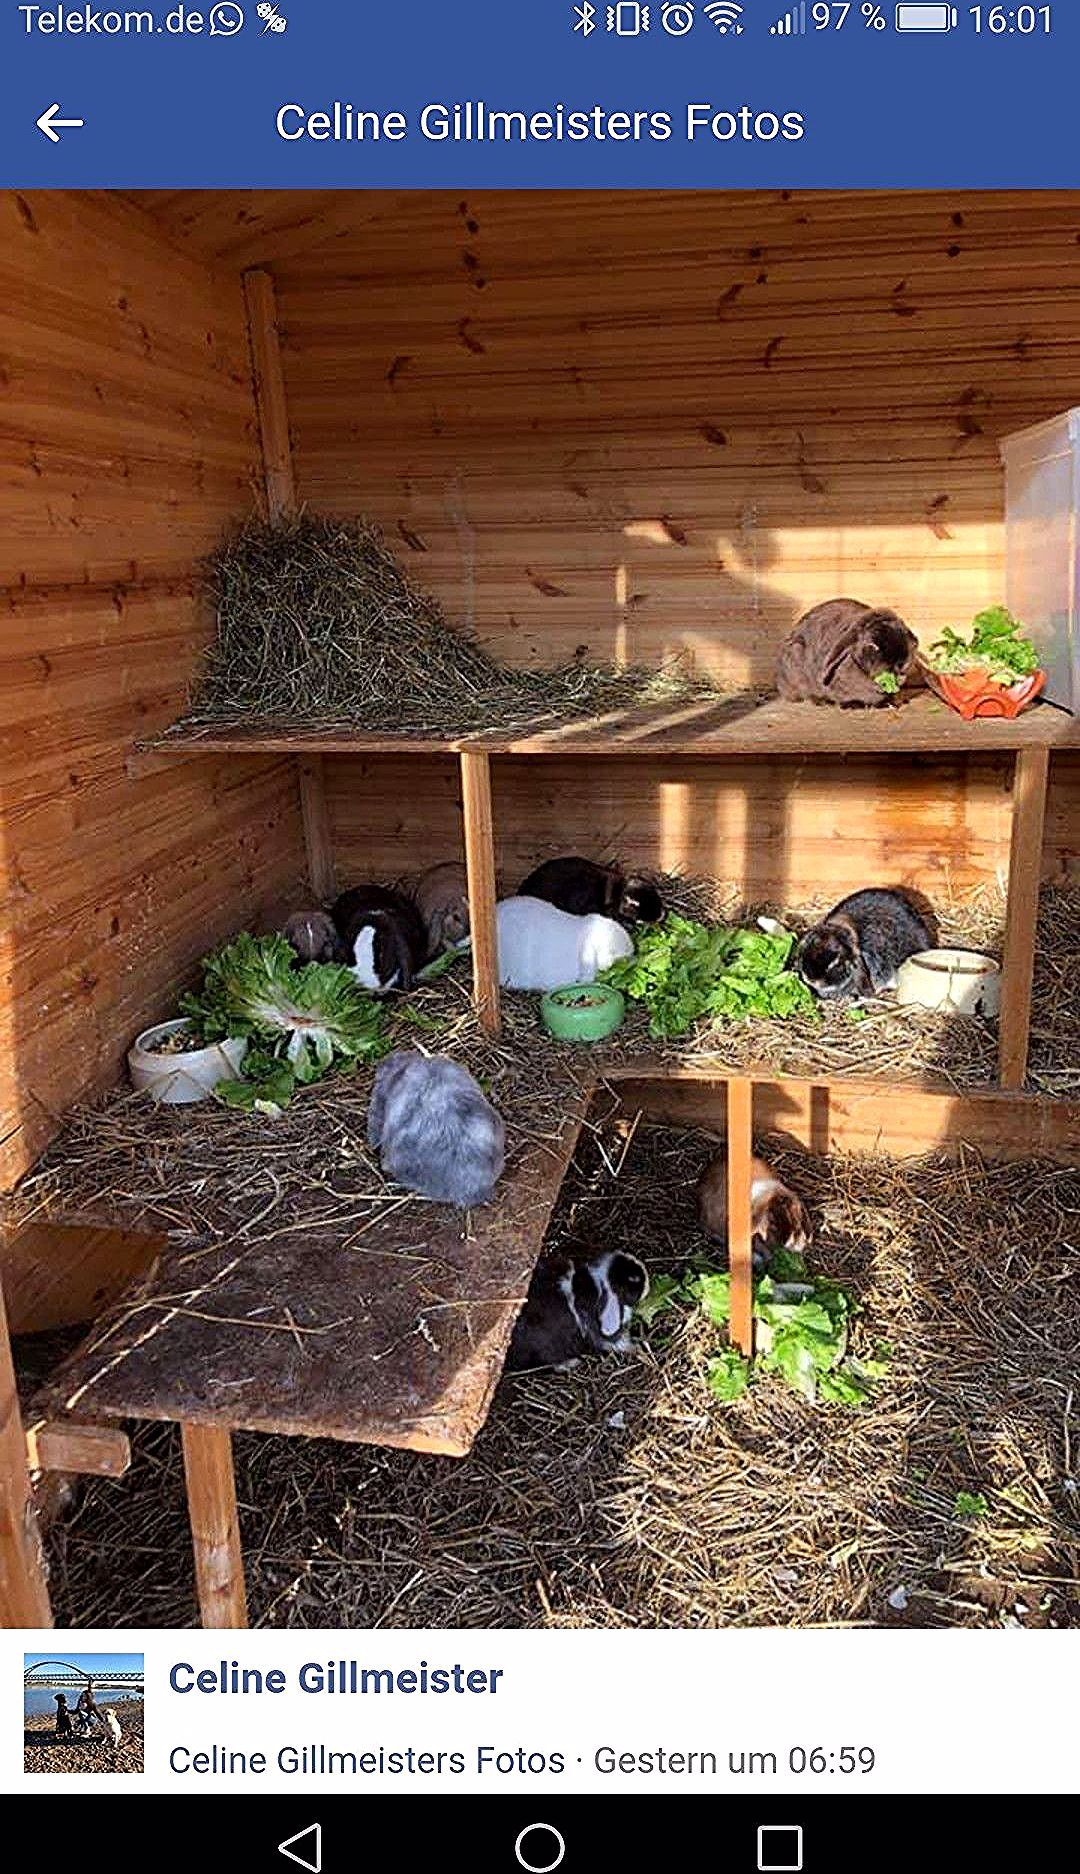 Pin By Johbohede On Kanin In 2020 Rabbit Enclosure Bunny Rabbit Crafts Rabbit Hutches